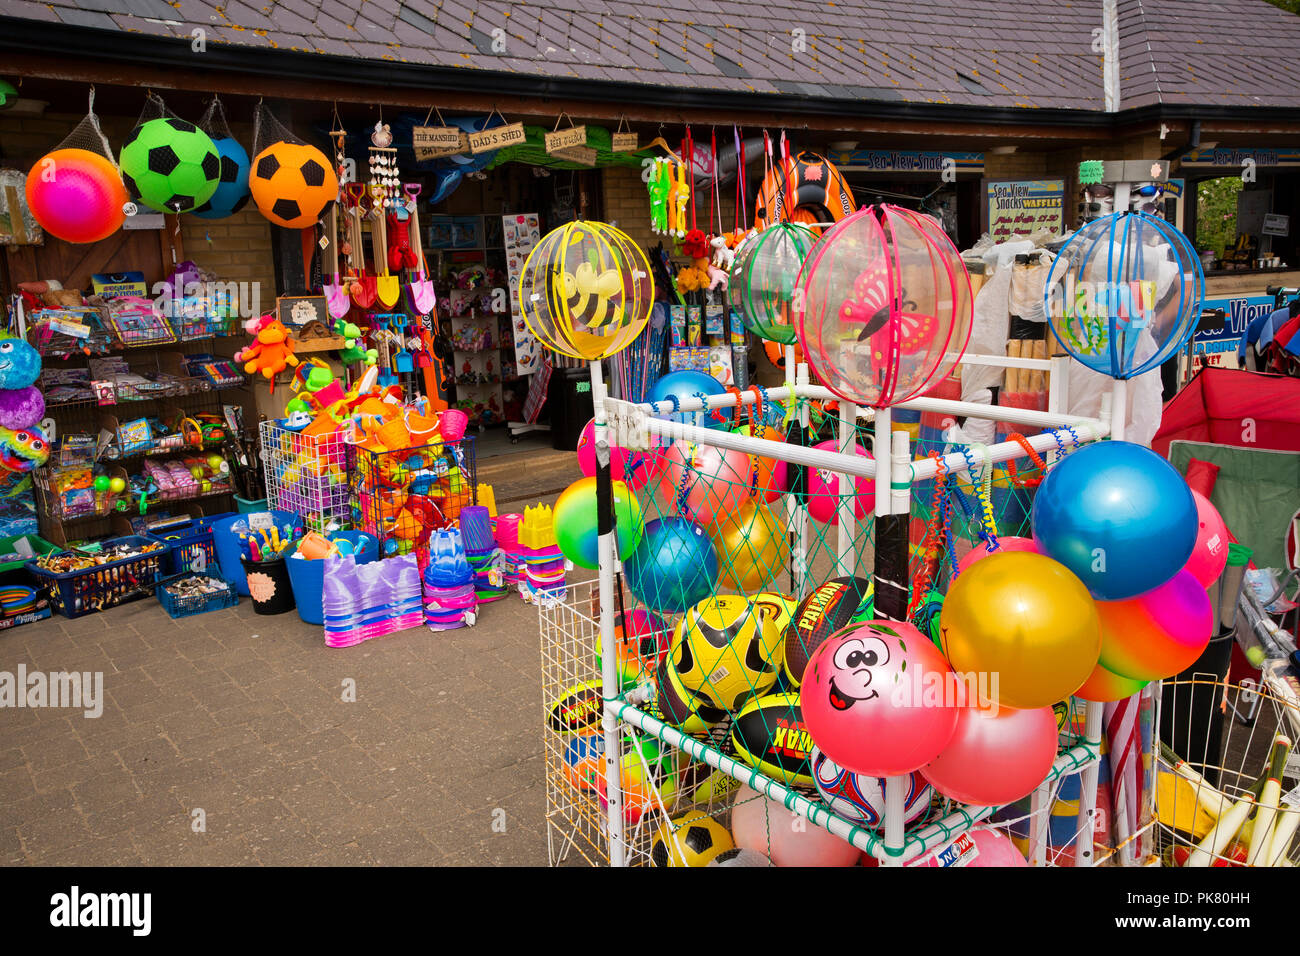 UK, England, Yorkshire, Filey, Coble Landing, colourful inexpensive beach toys outside shop - Stock Image